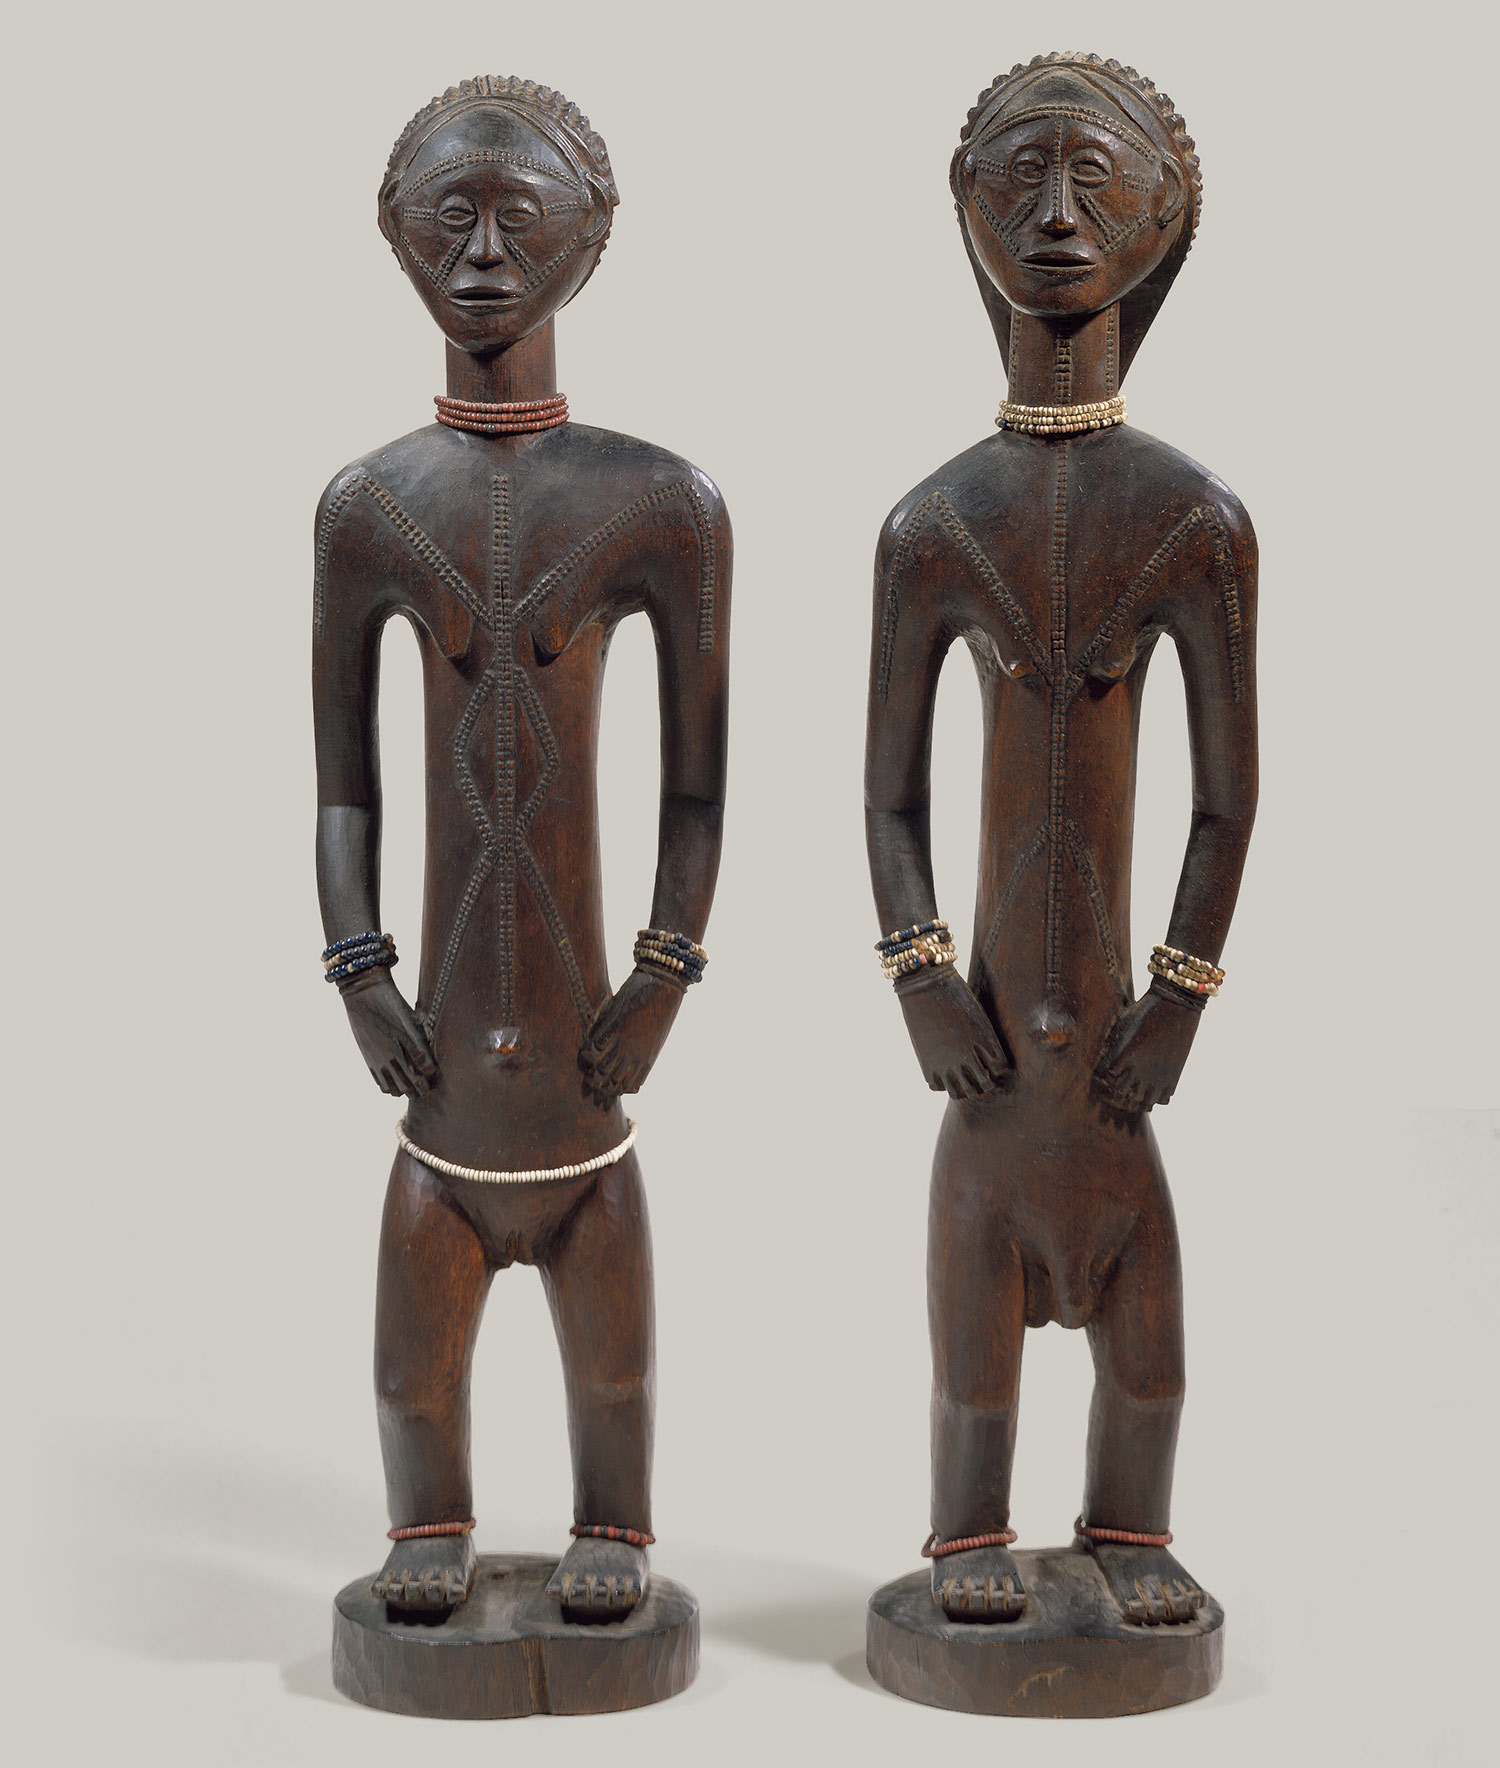 Standing Male and Female Figures, ca. 18th-19th century from the Democratic Republic of Congo.  Courtesy of the Heilbrunn Timeline from the Metropolitan Museum of Art.